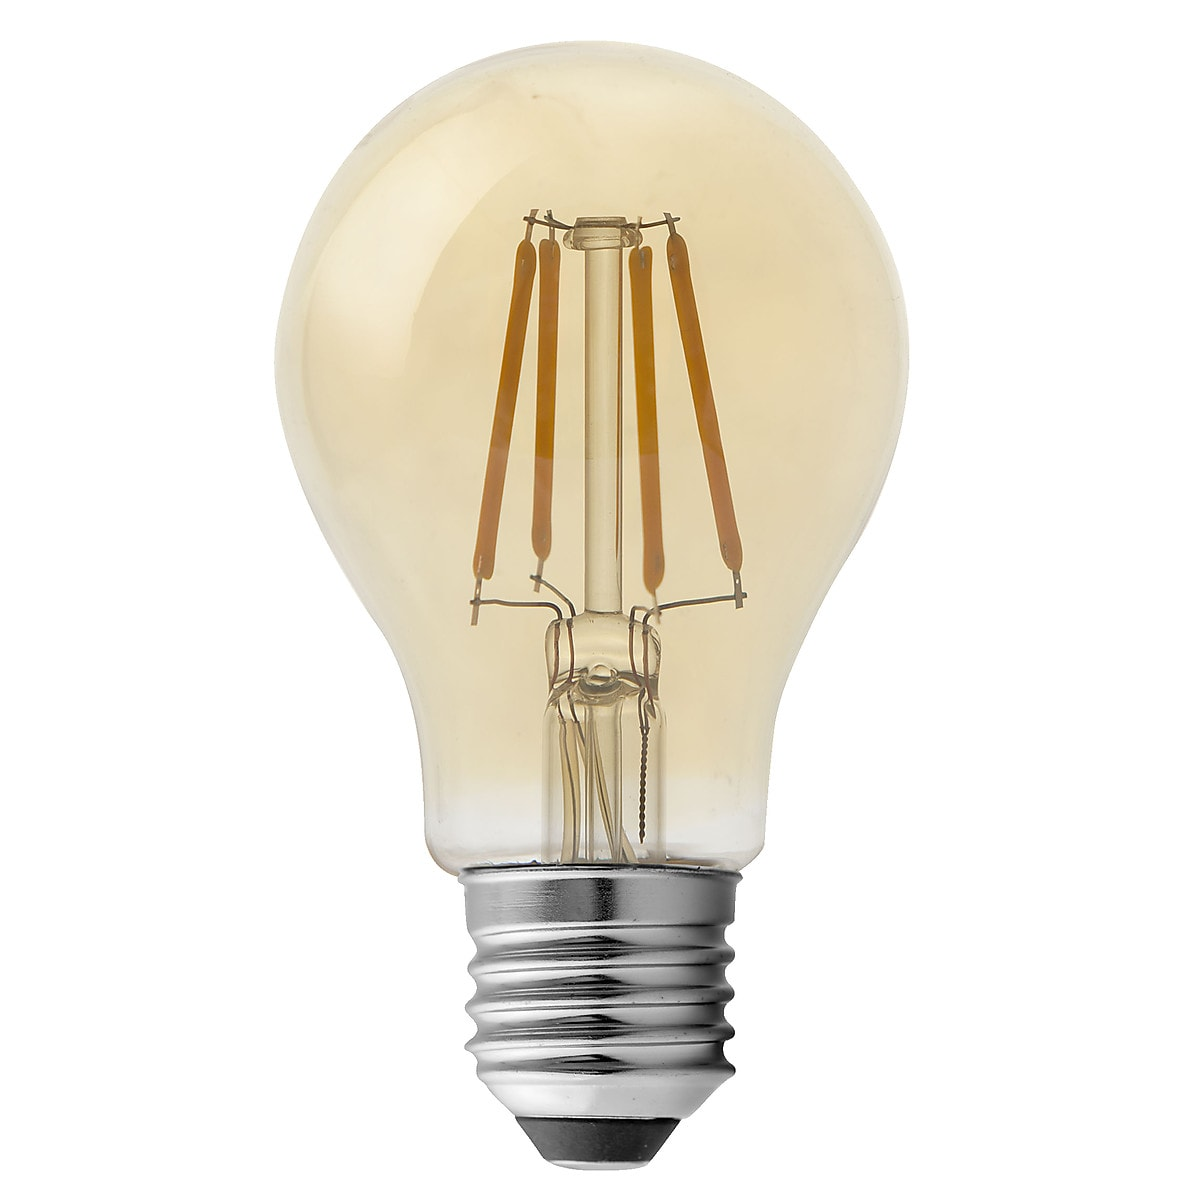 Dimmbare LED-Schmucklampe E27 Northlight